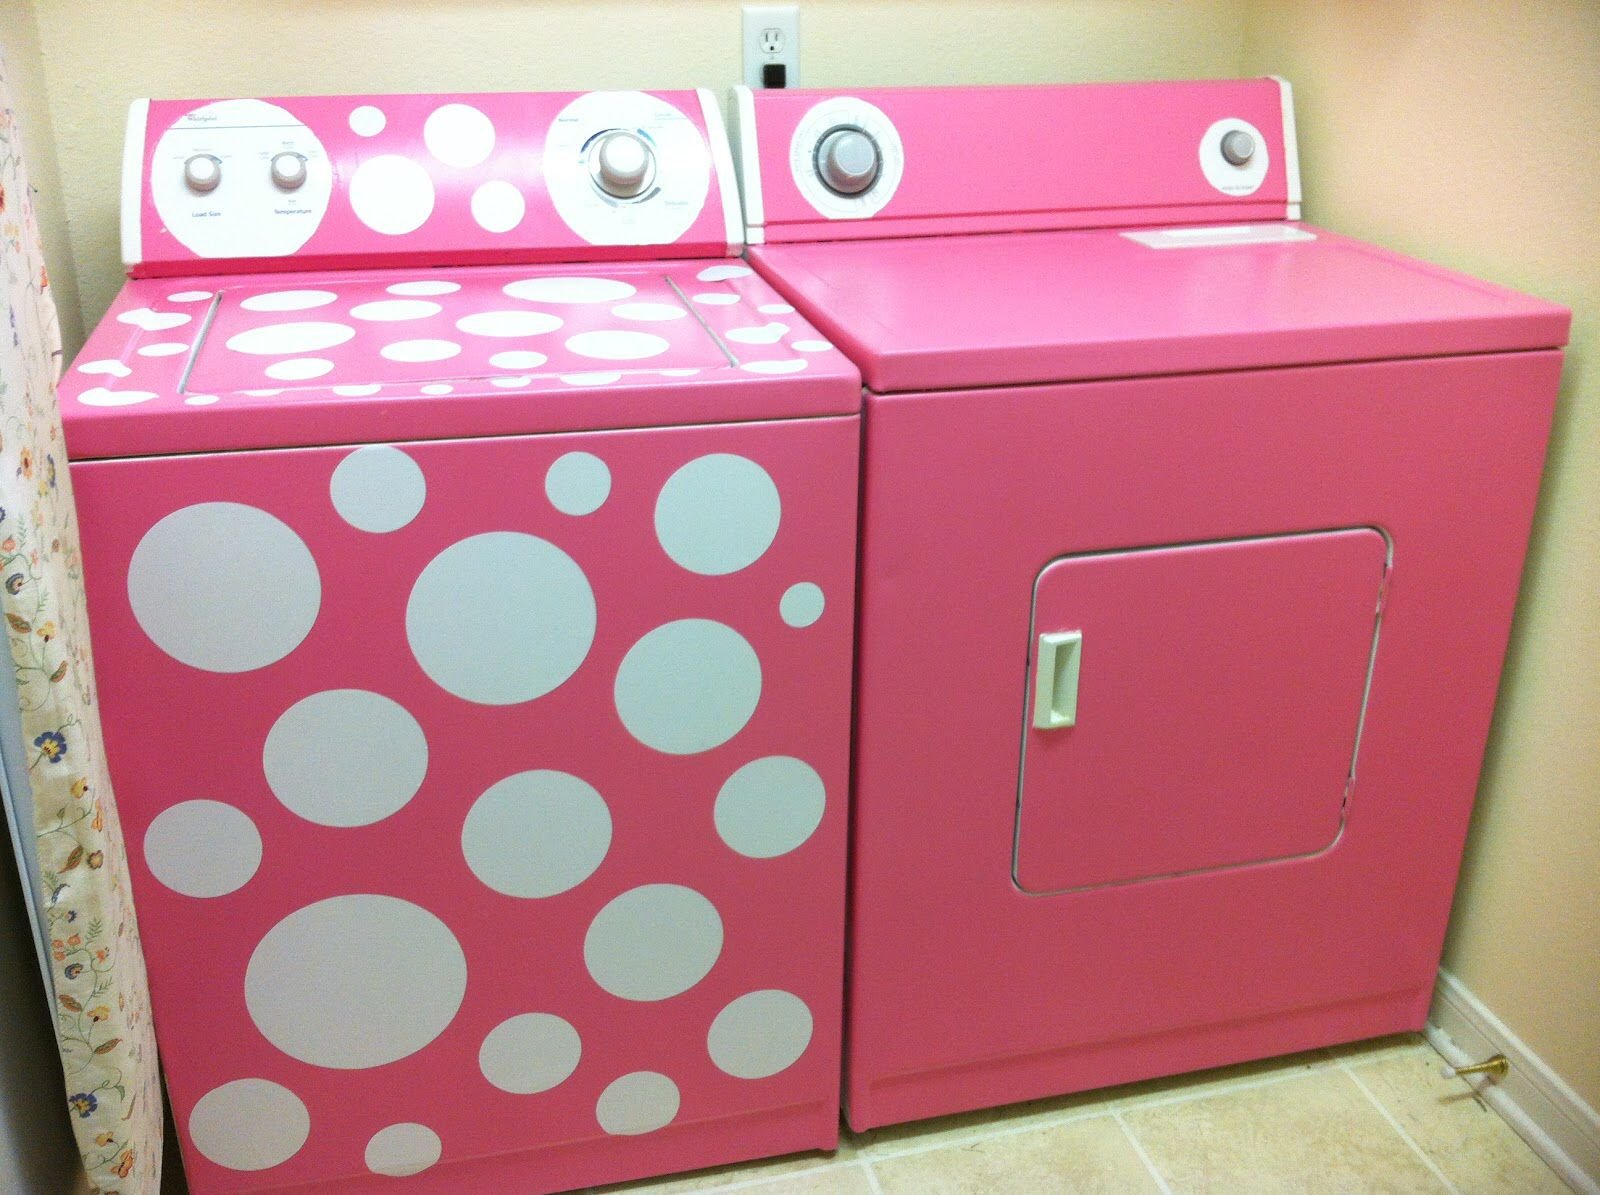 I So Want To Paint My Washer Dryer Pink Polka Dots Pink Kitchen Polka Dots